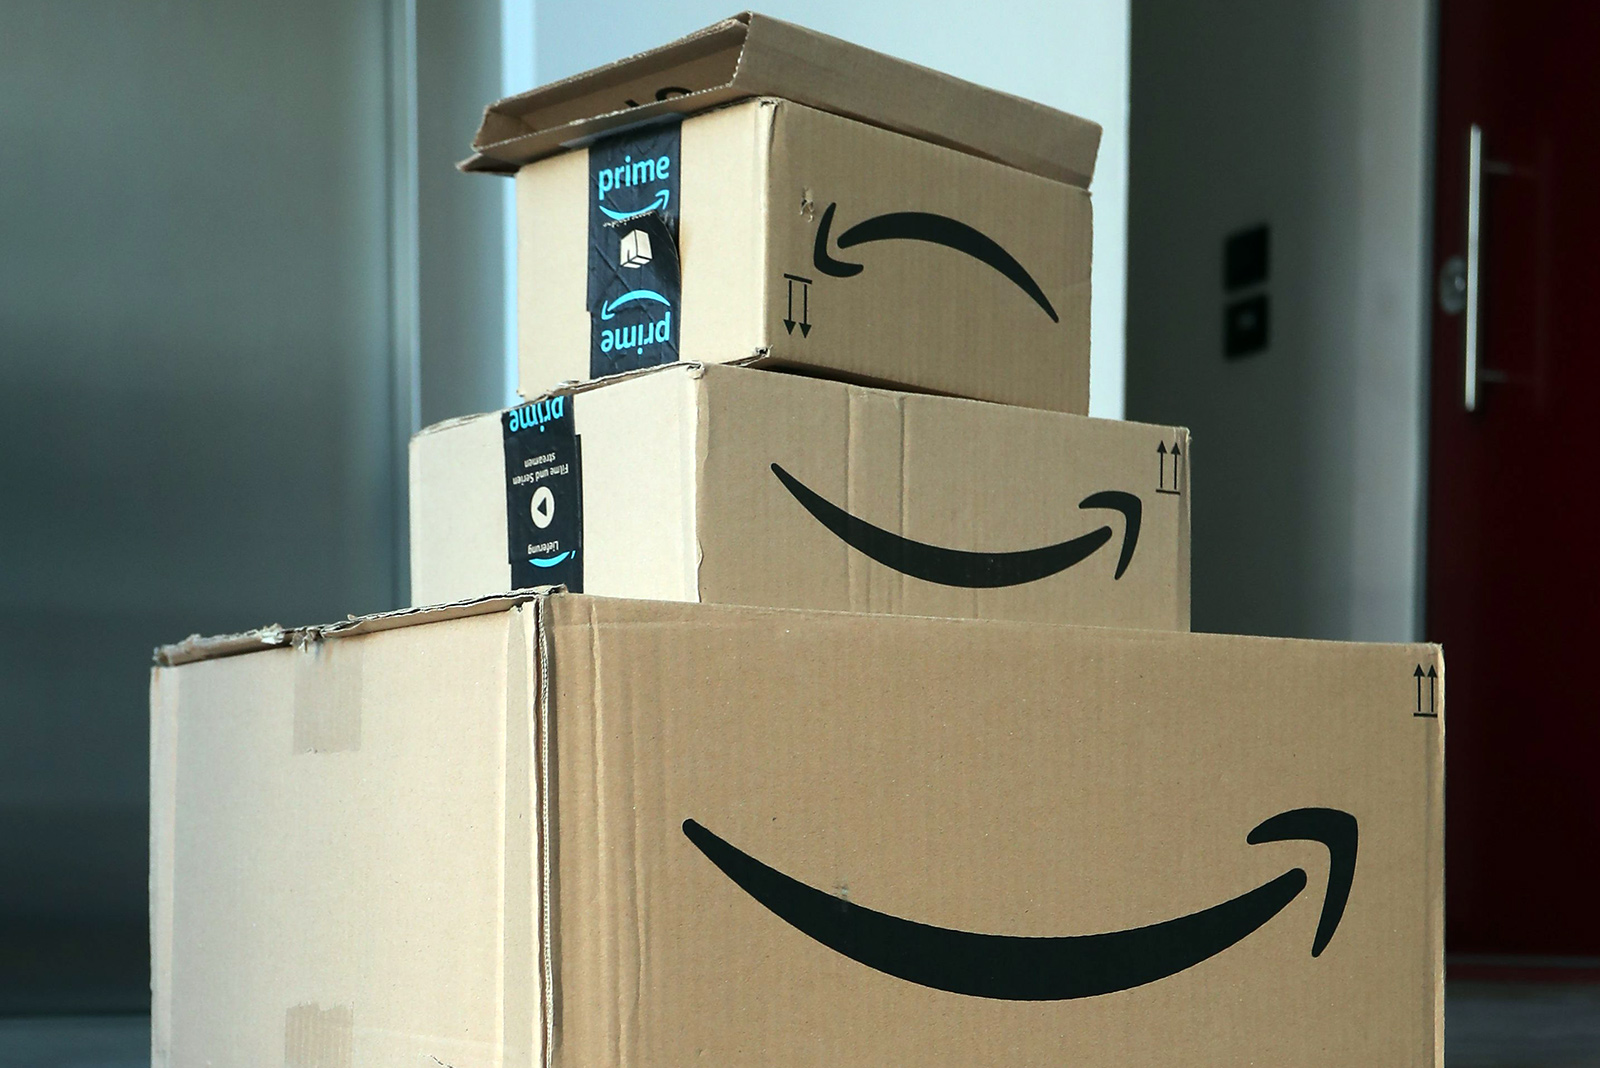 Today S Top Deals Early Amazon Black Friday 2020 Sale 1 40 Black Kn95 Masks Clorox Wipes 17 Portable Speaker More Bgr